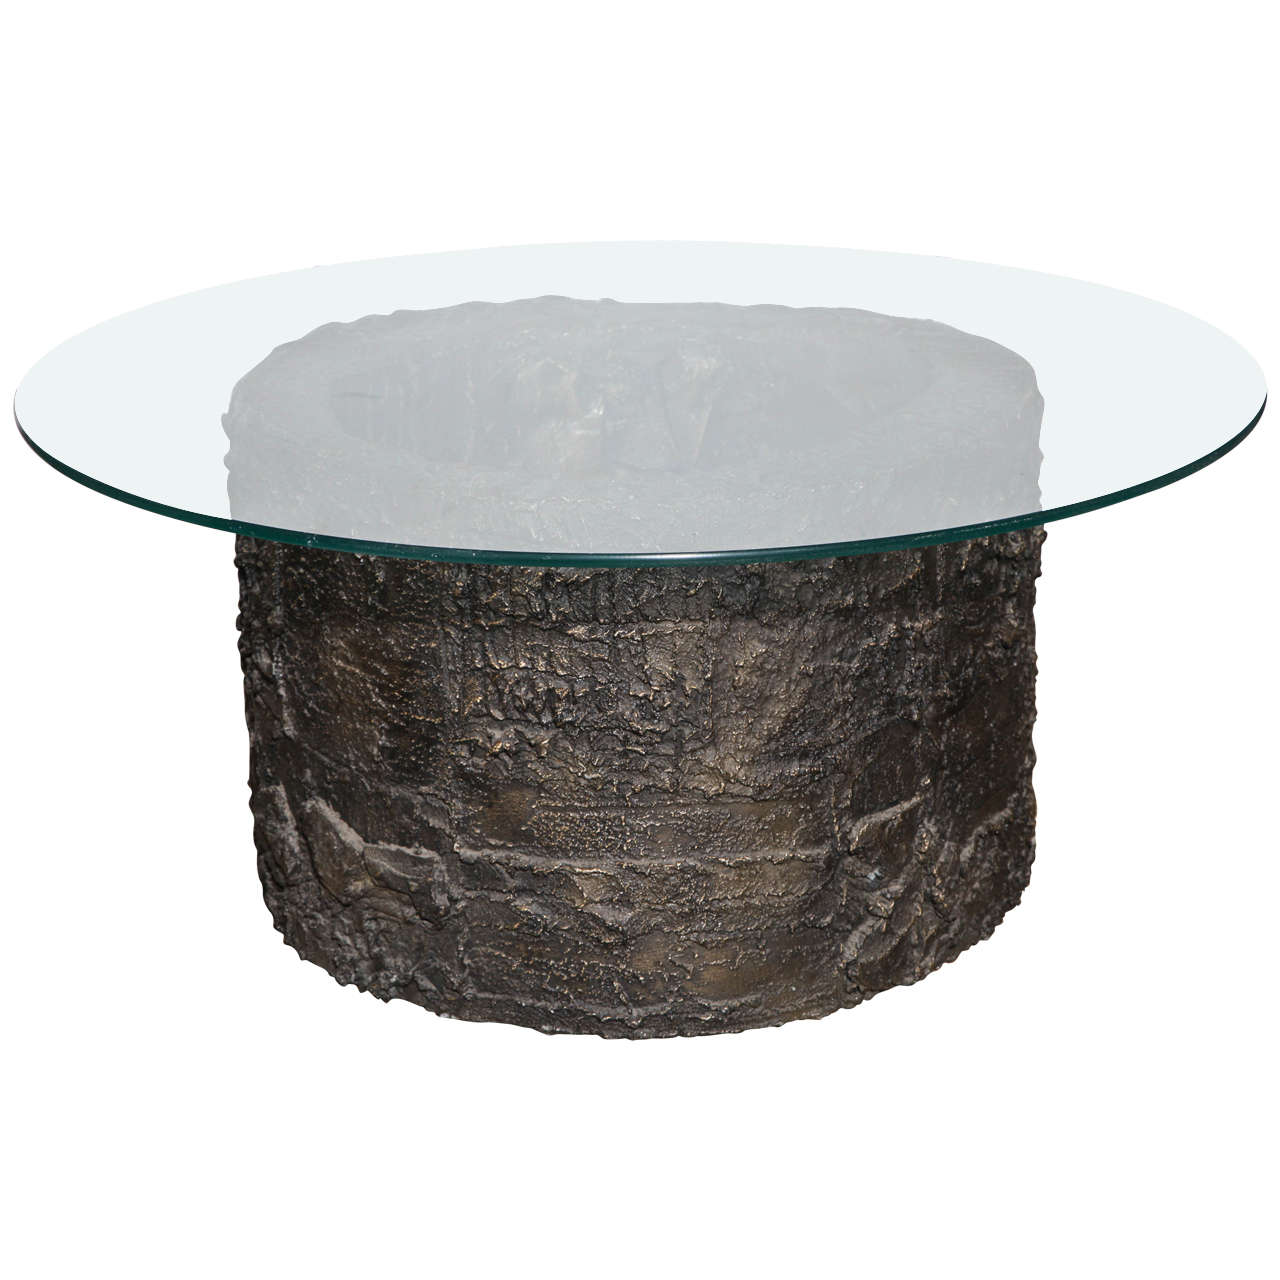 Paul Evans for Directional Sculpted Round Bronze Resin Brutalist Coffee Table